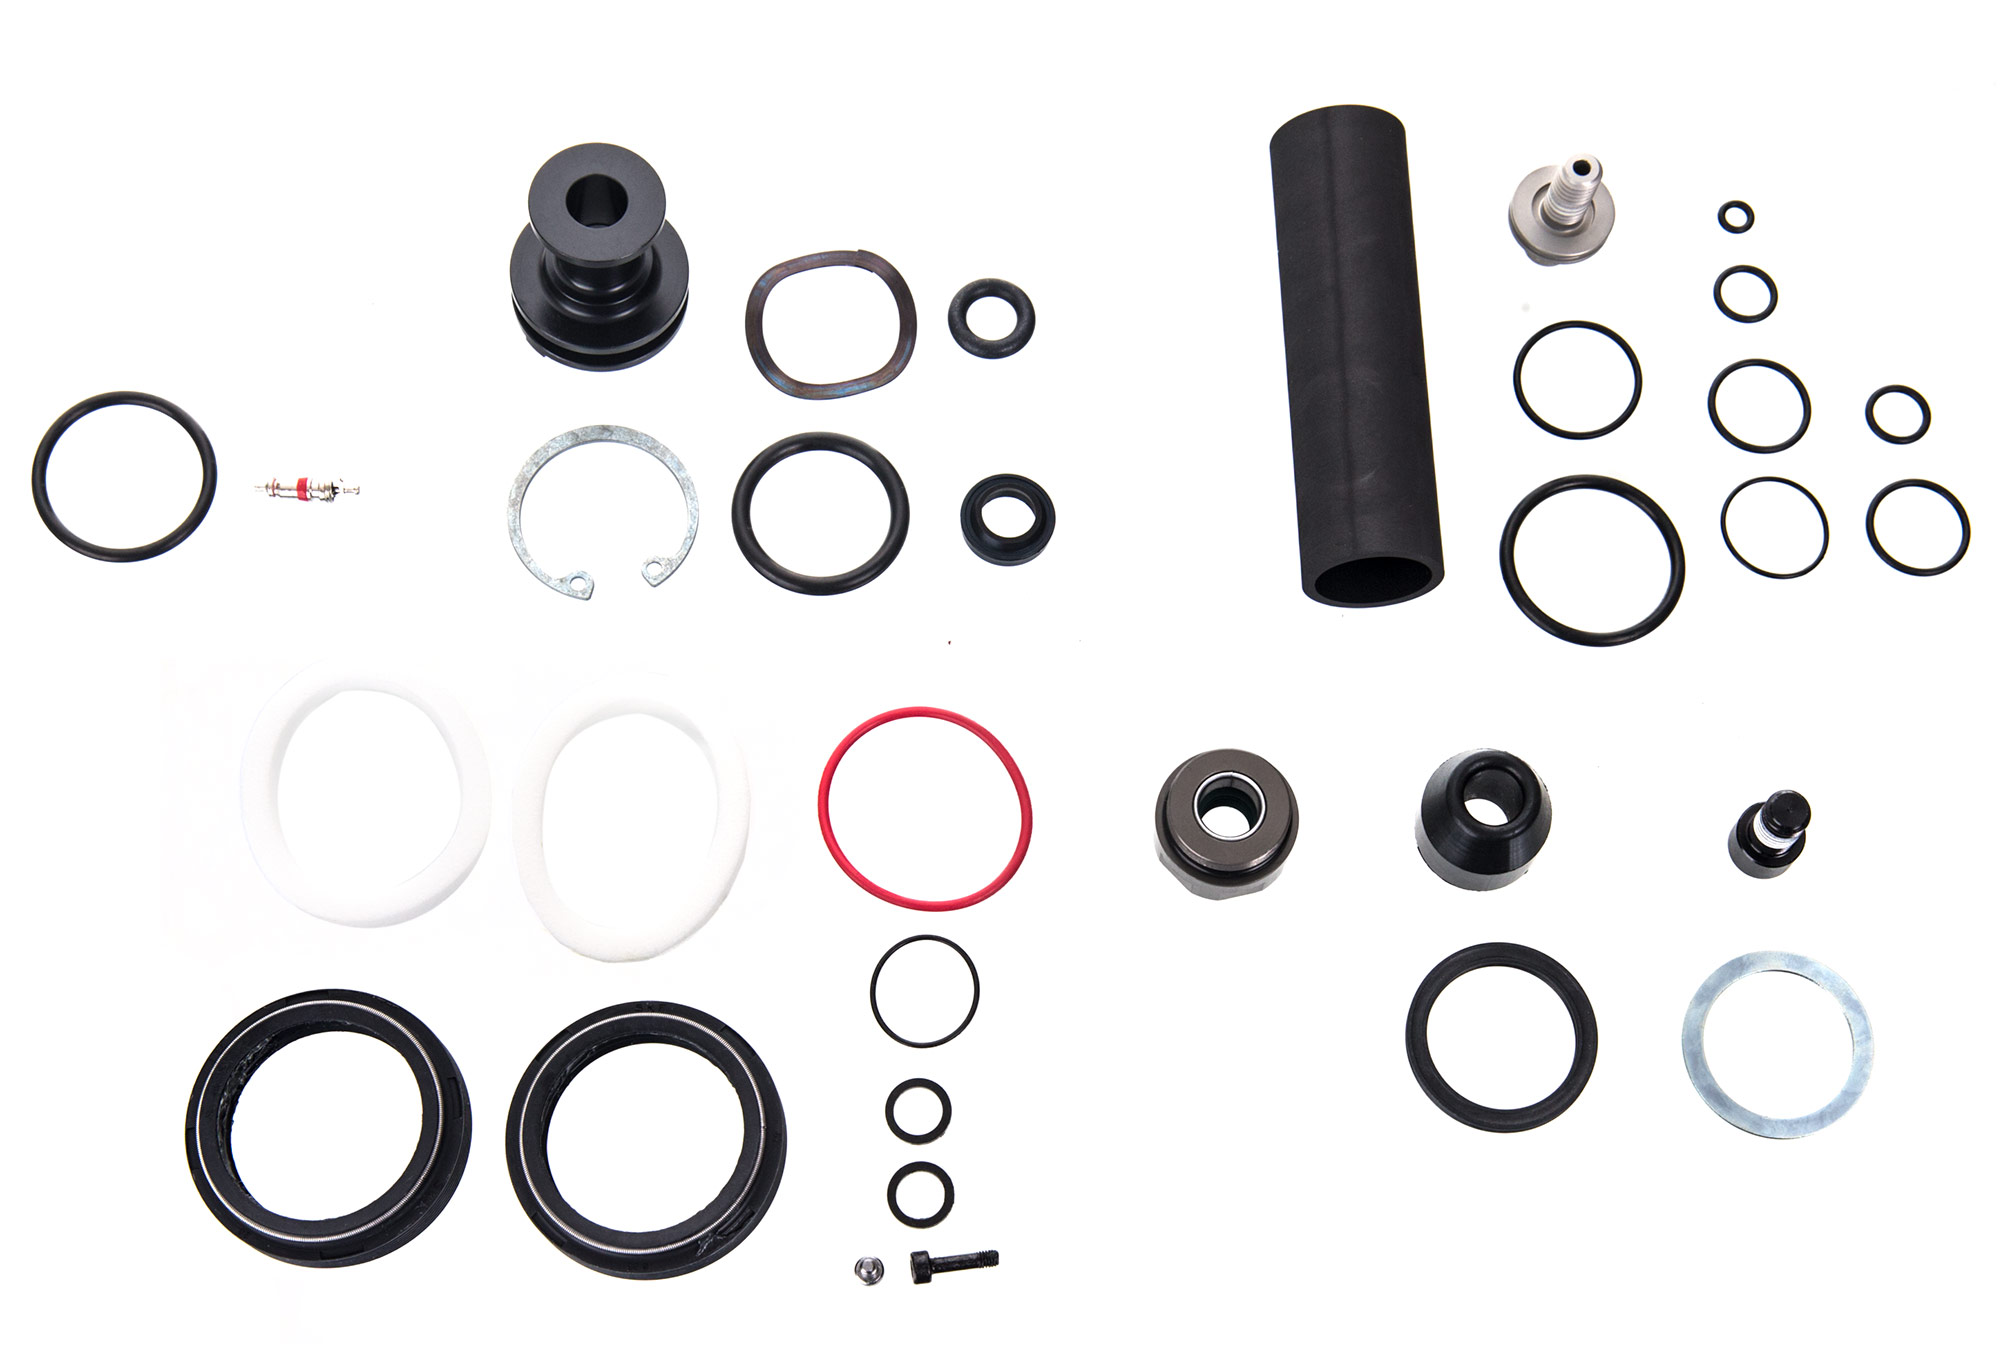 ROCKSHOX SERVICE KIT FULL PIKE Solo Air 11 4018 027 003